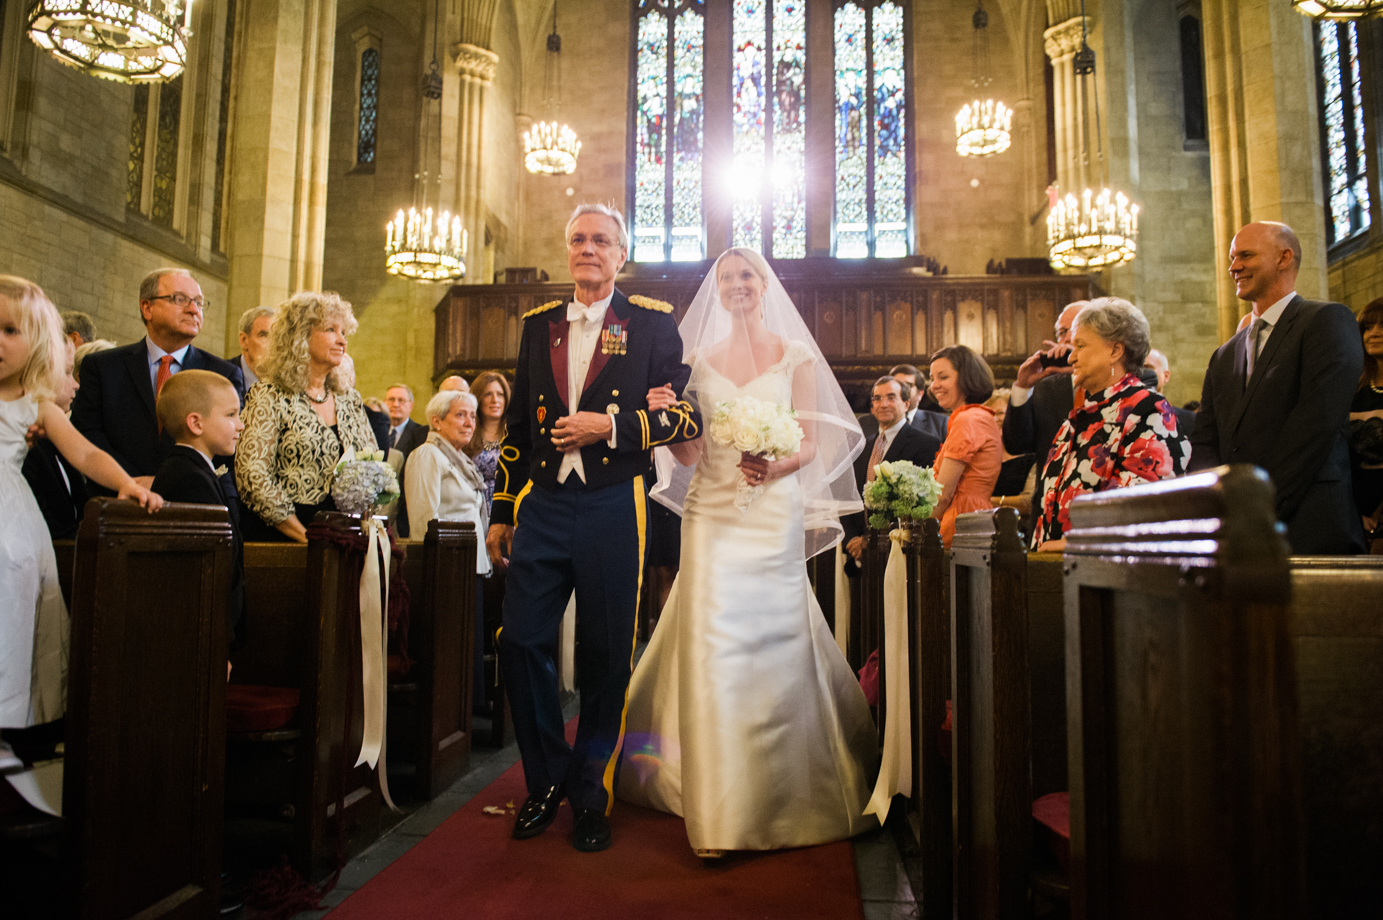 UniversityClubWeddingPhotography-12